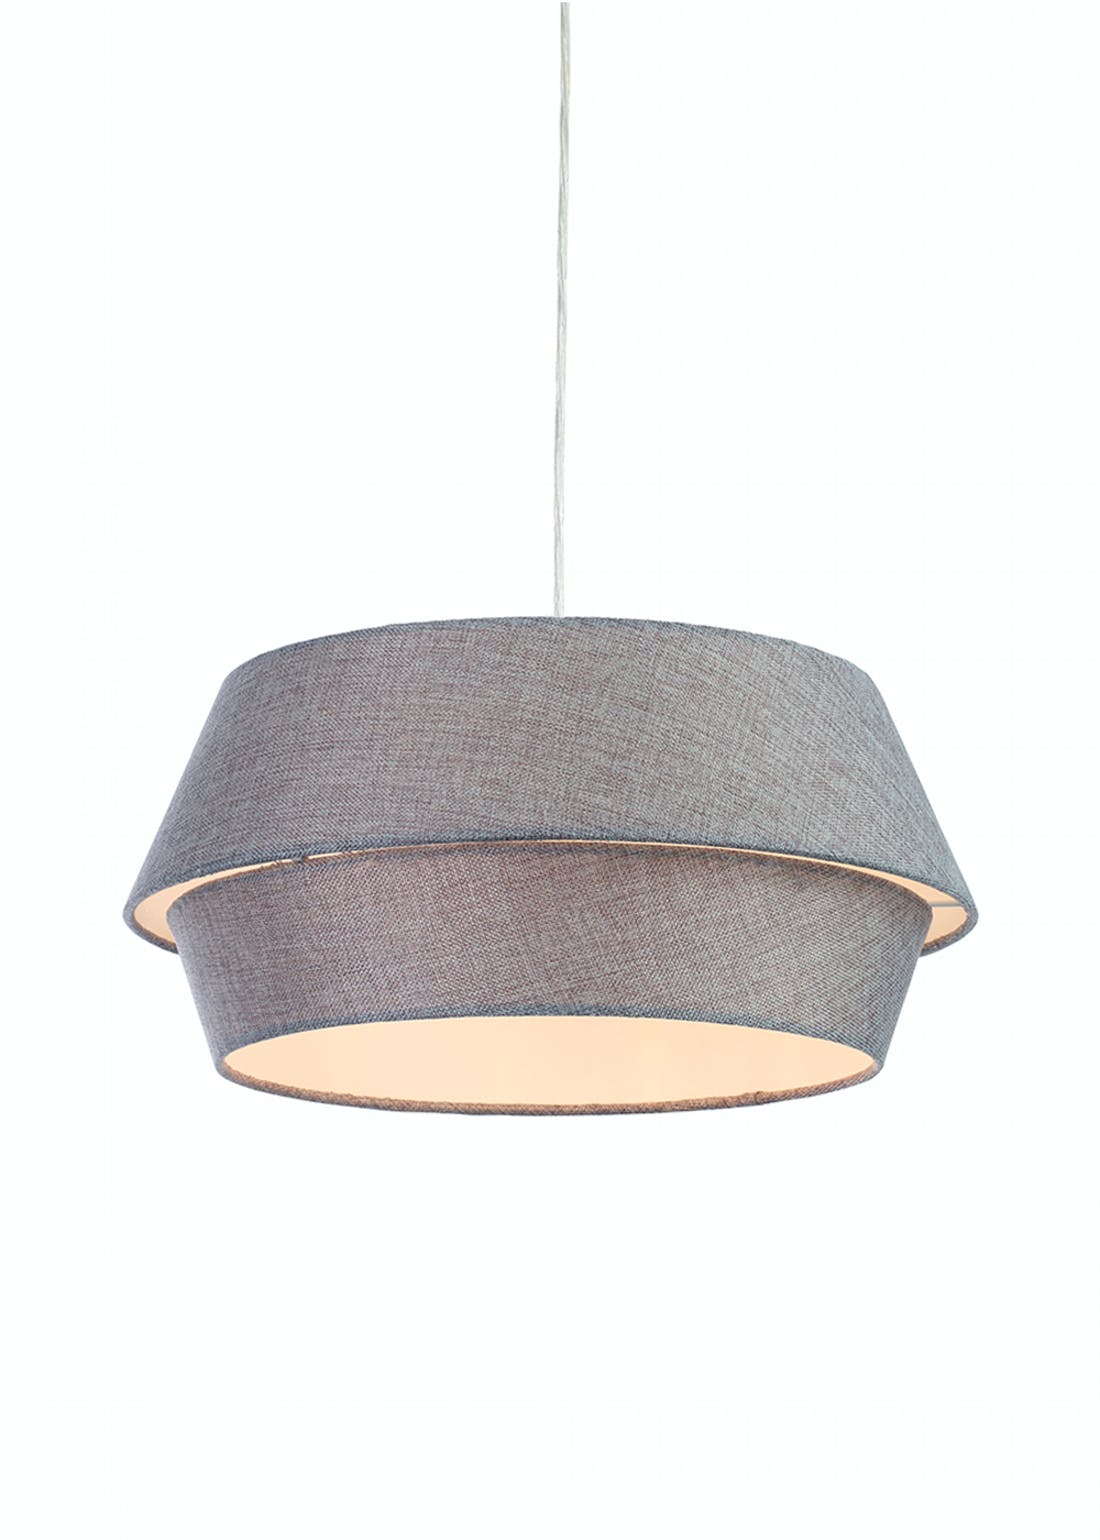 Tiered Linen Easy Fit Shade (W45cm x H20cm)